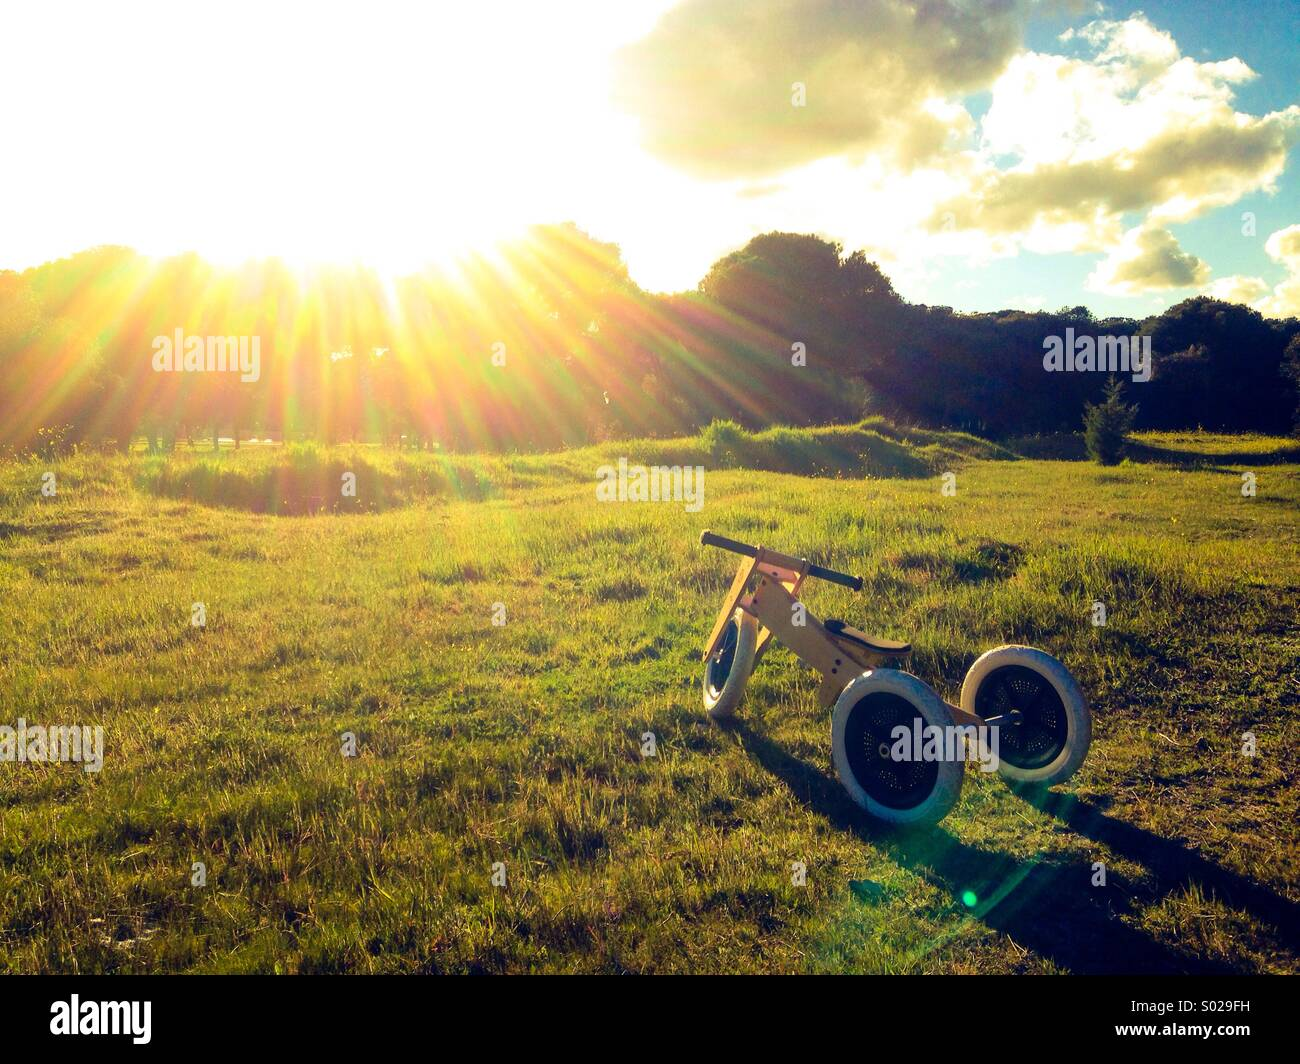 Tricycle on the grass - Stock Image